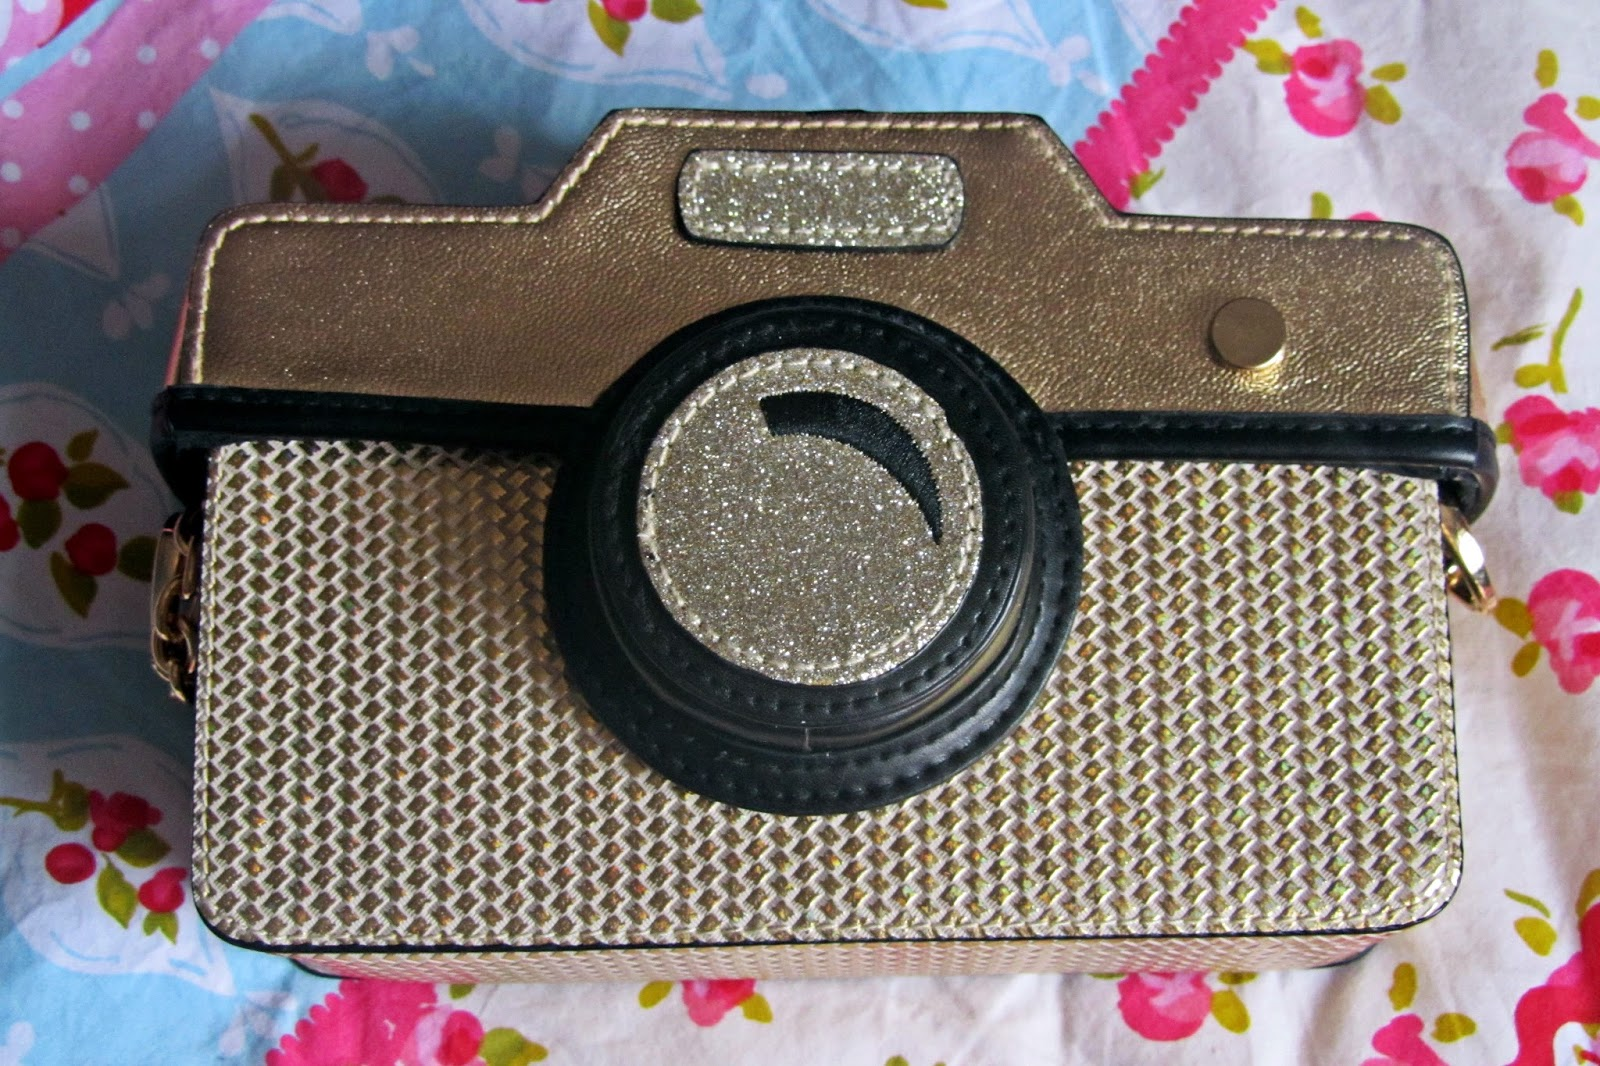 My Other Summer Handbag Purchase Was This Quirky Camera Shaped Bag From Accessorize Isn T It Amazing